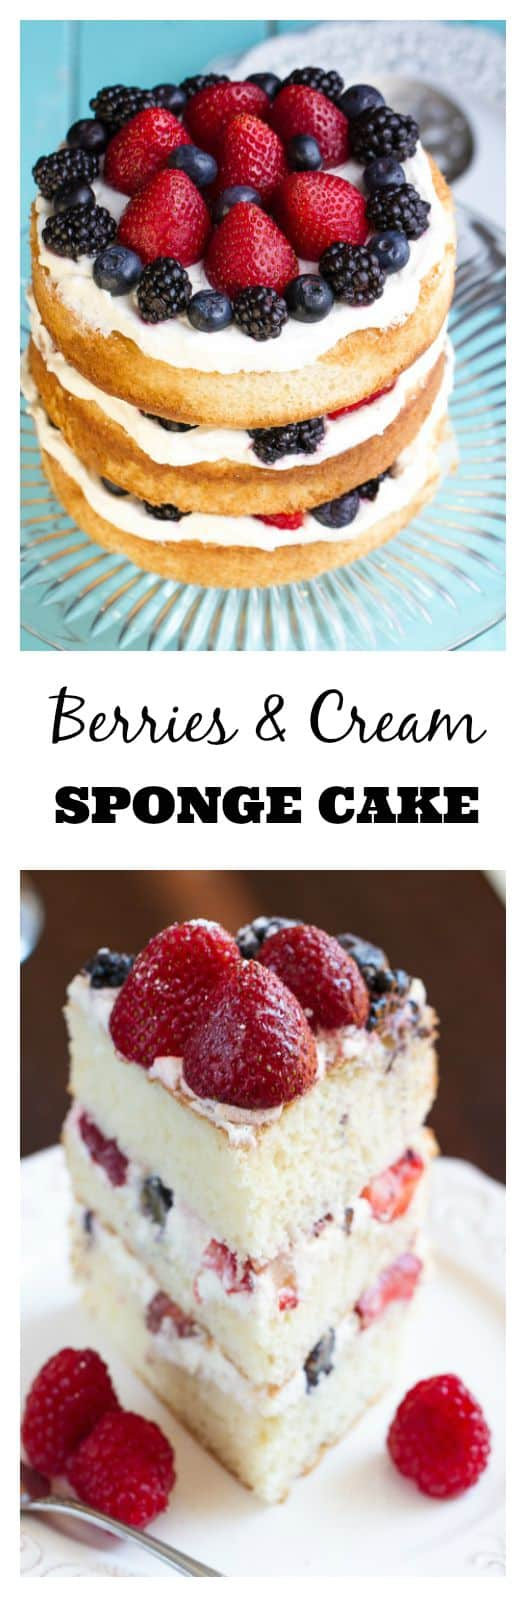 Berries and Cream Sponge Cake makes an impressive cake that's perfect for any special occasion